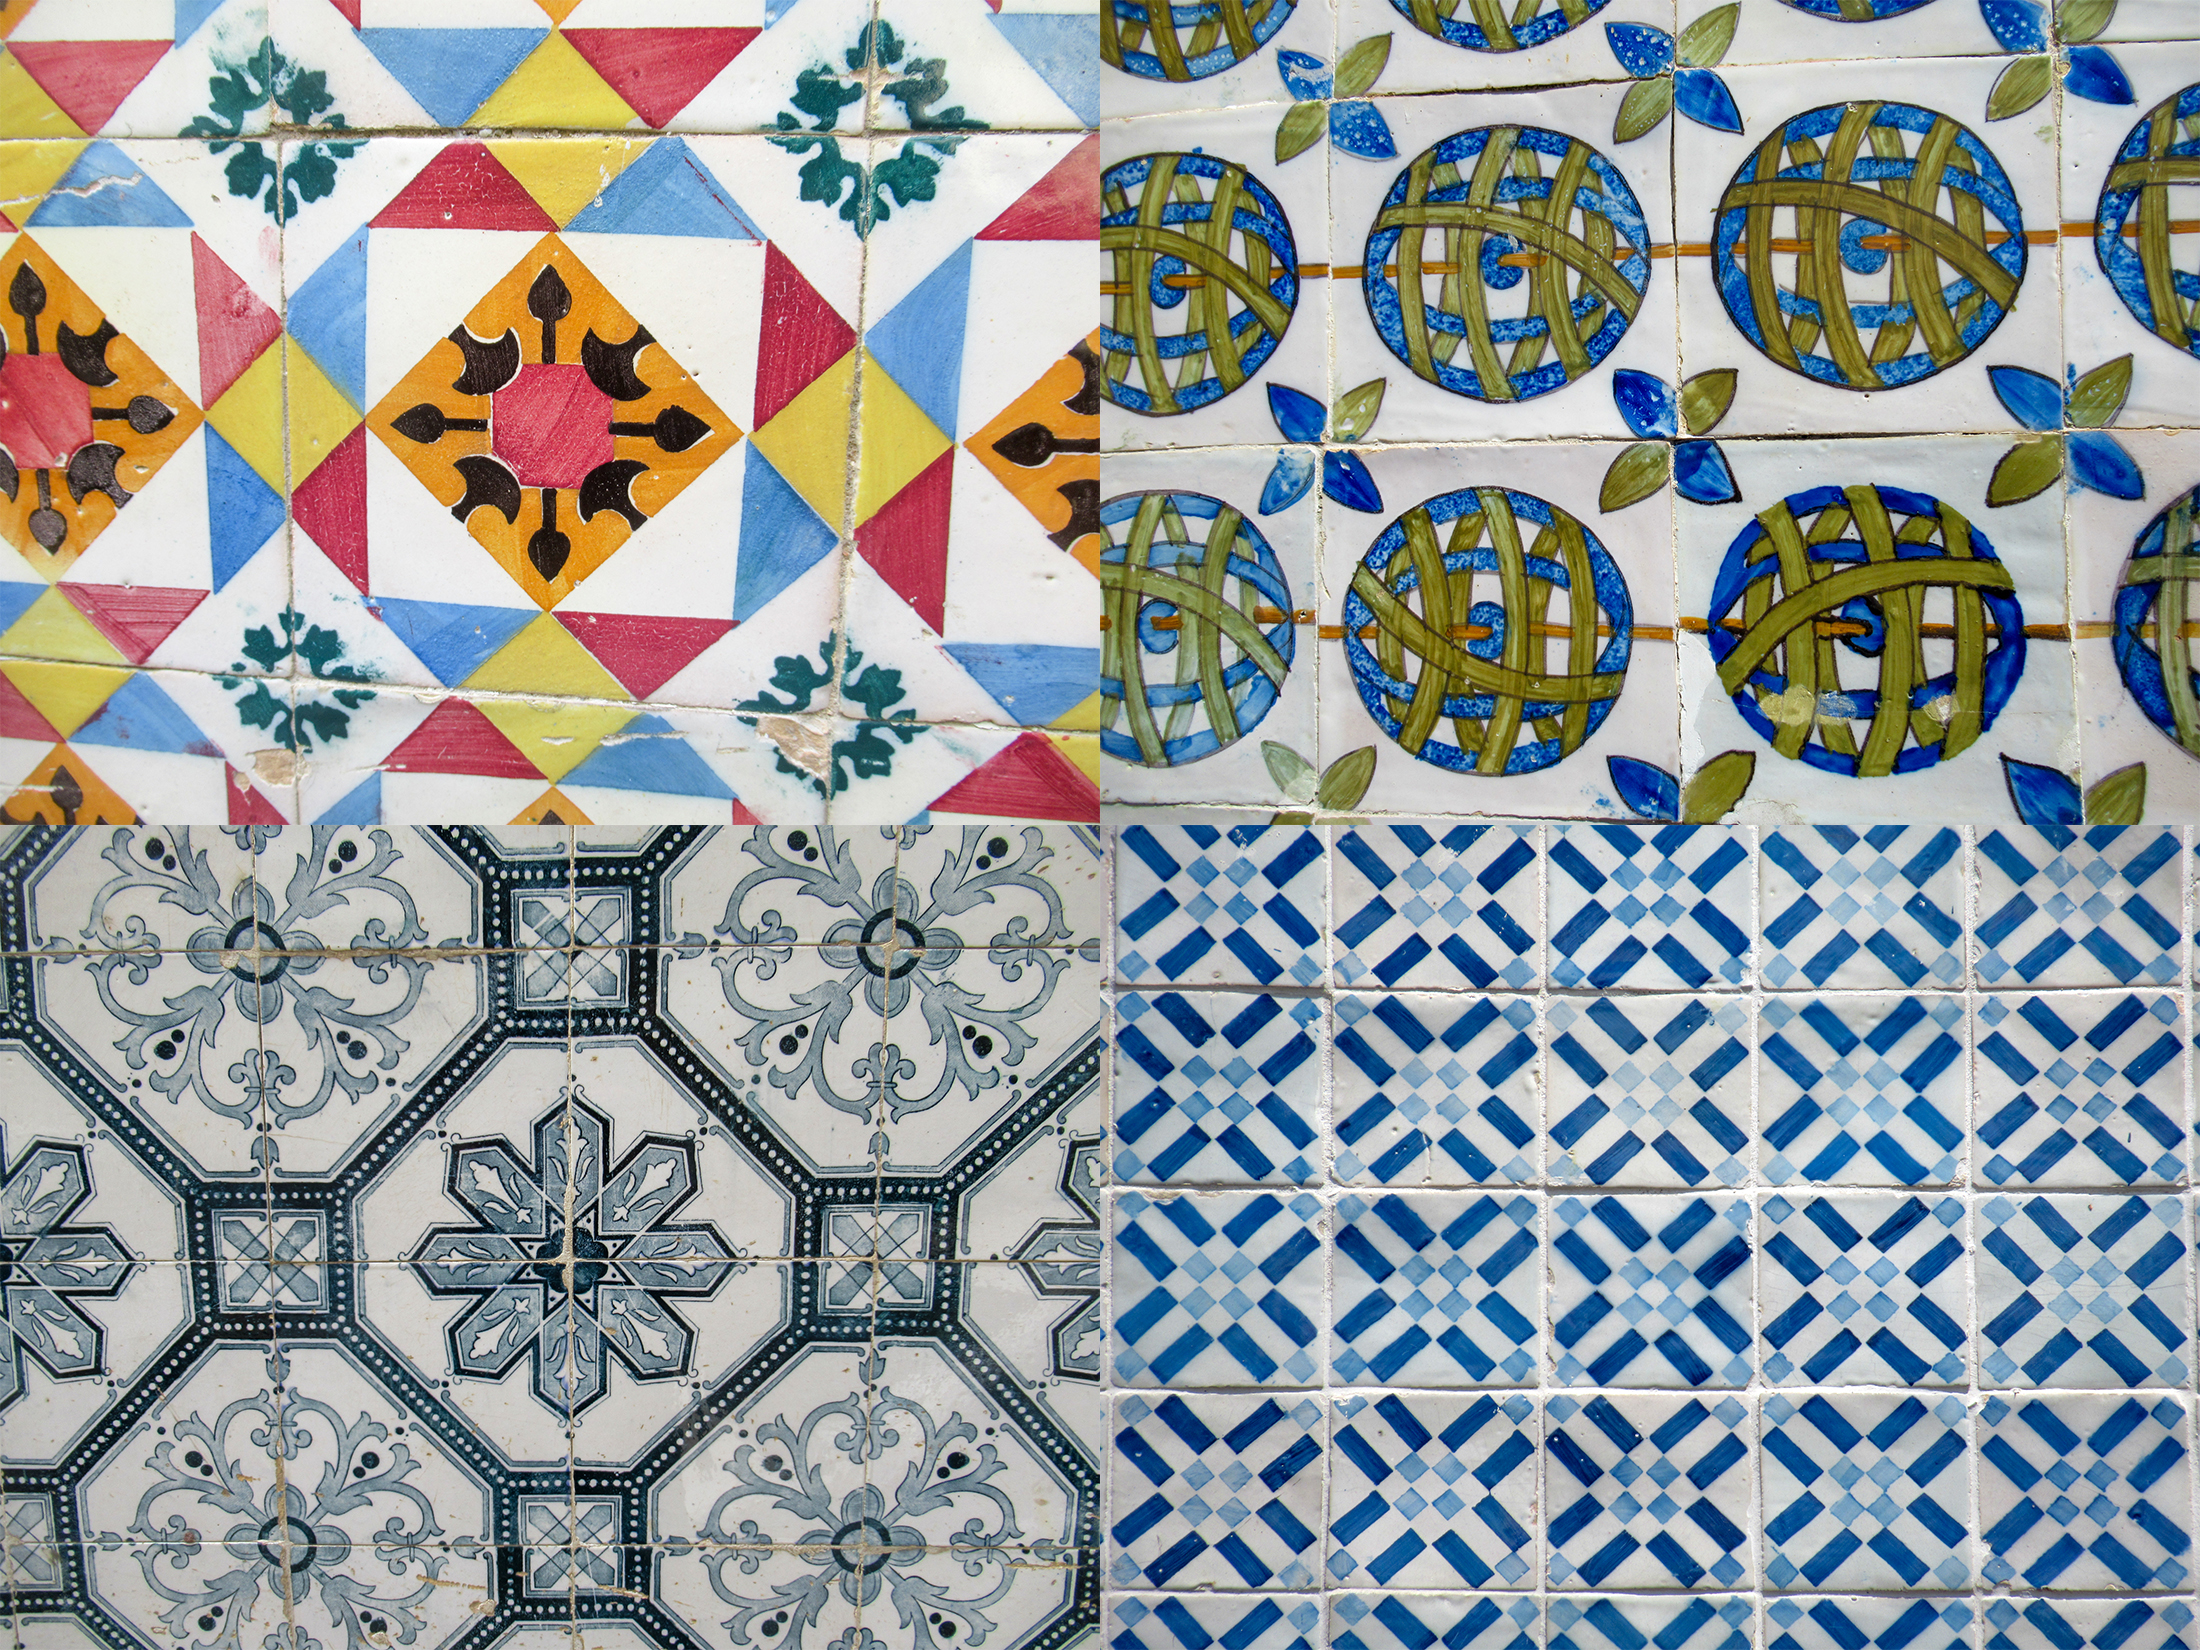 Different styles of Portuguese tiles.